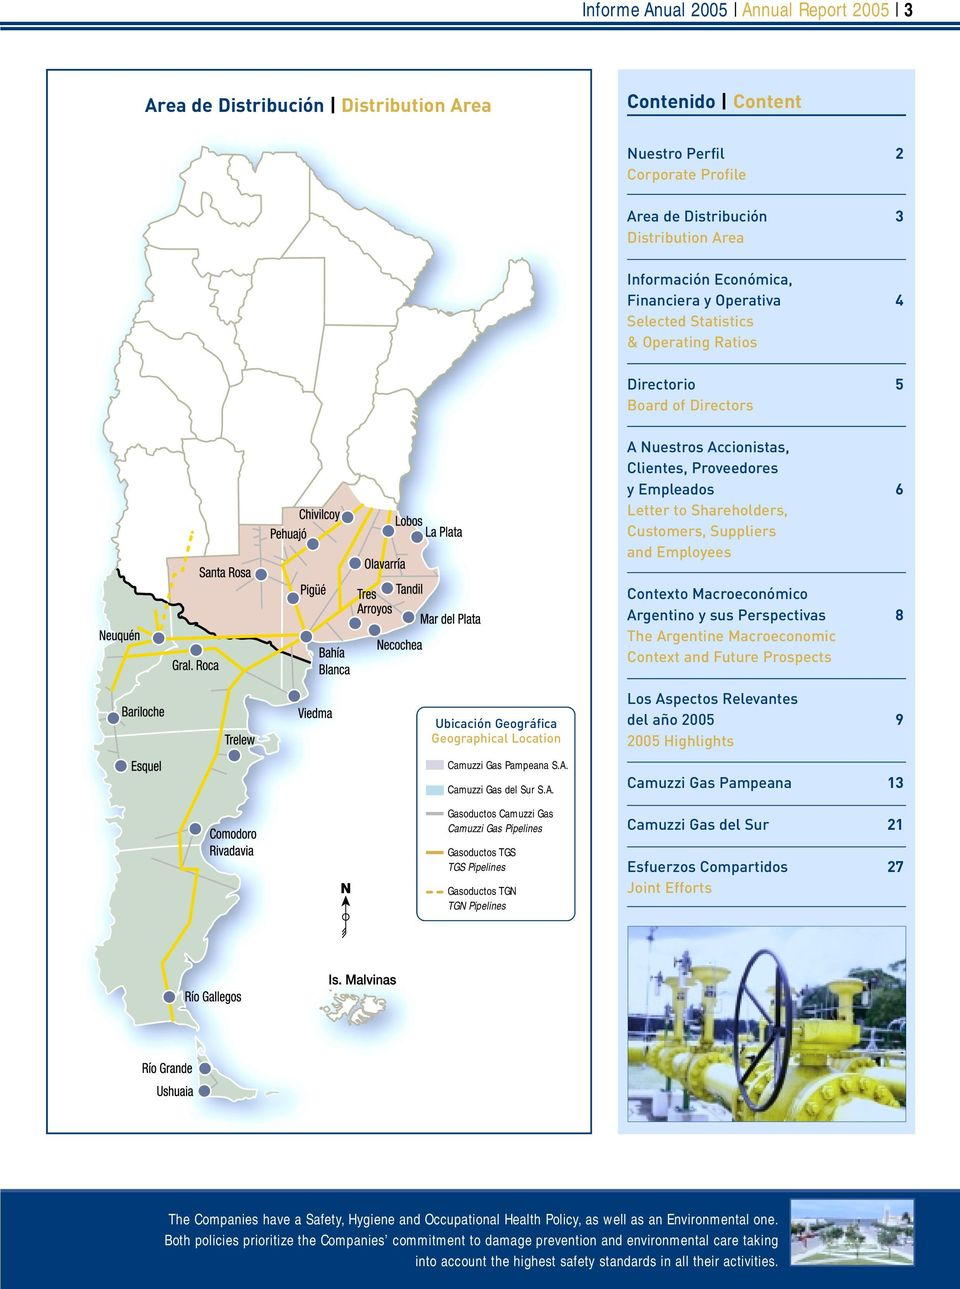 Suppliers and Employees Contexto Macroeconómico Argentino y sus Perspectivas 8 The Argentine Macroeconomic Context and Future Prospects Ubicación Geográfica Geographical Location Camuzzi Gas Pampeana